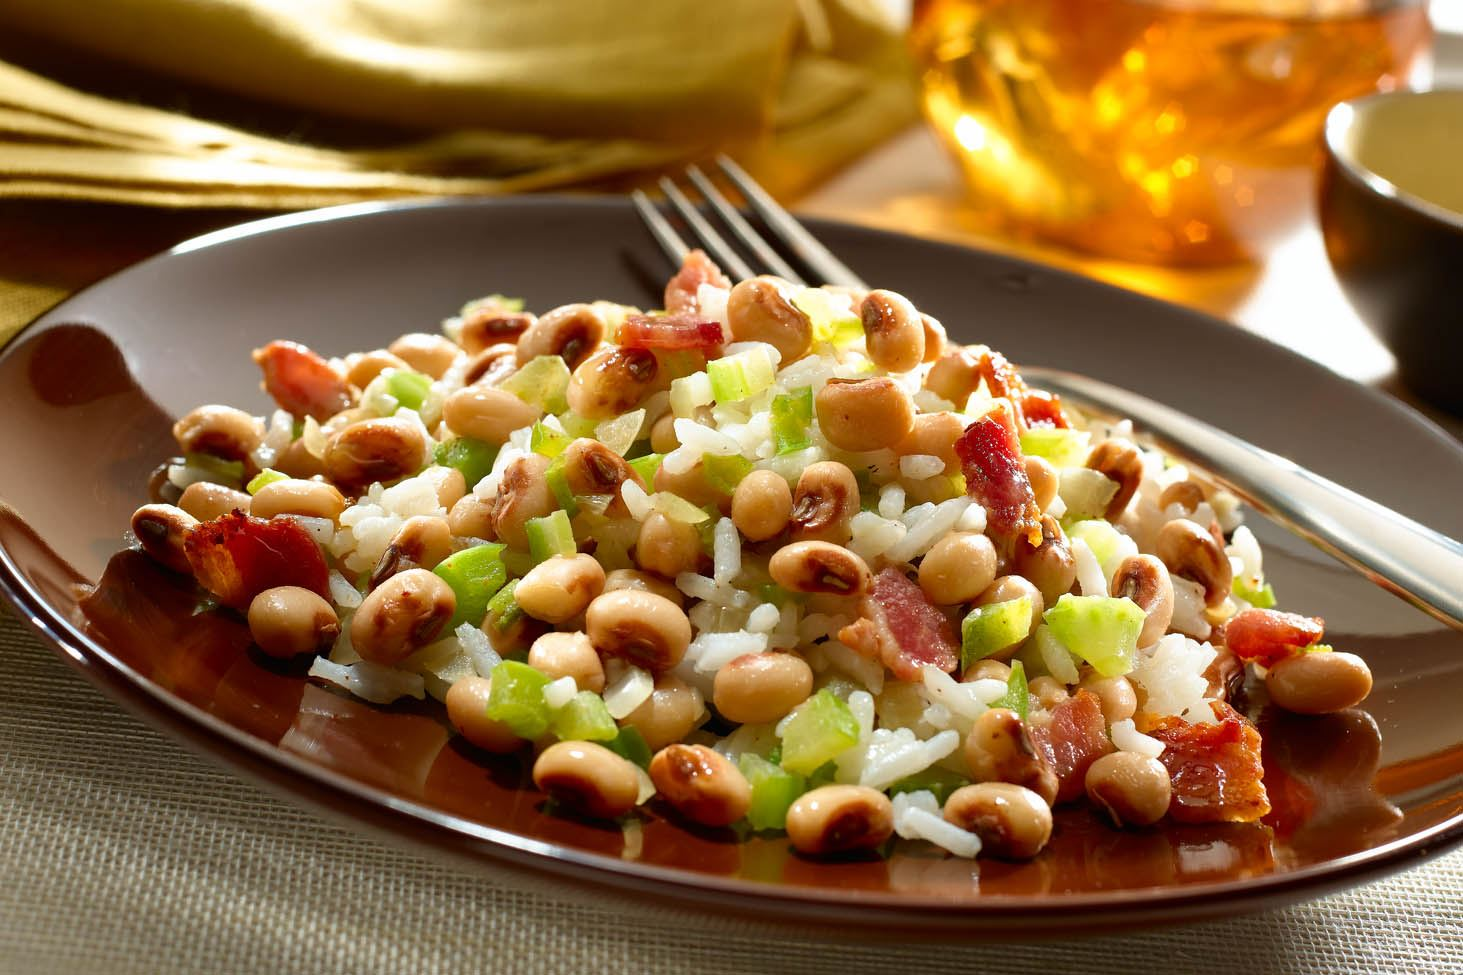 Hoppin' John with Black Eyed Peas